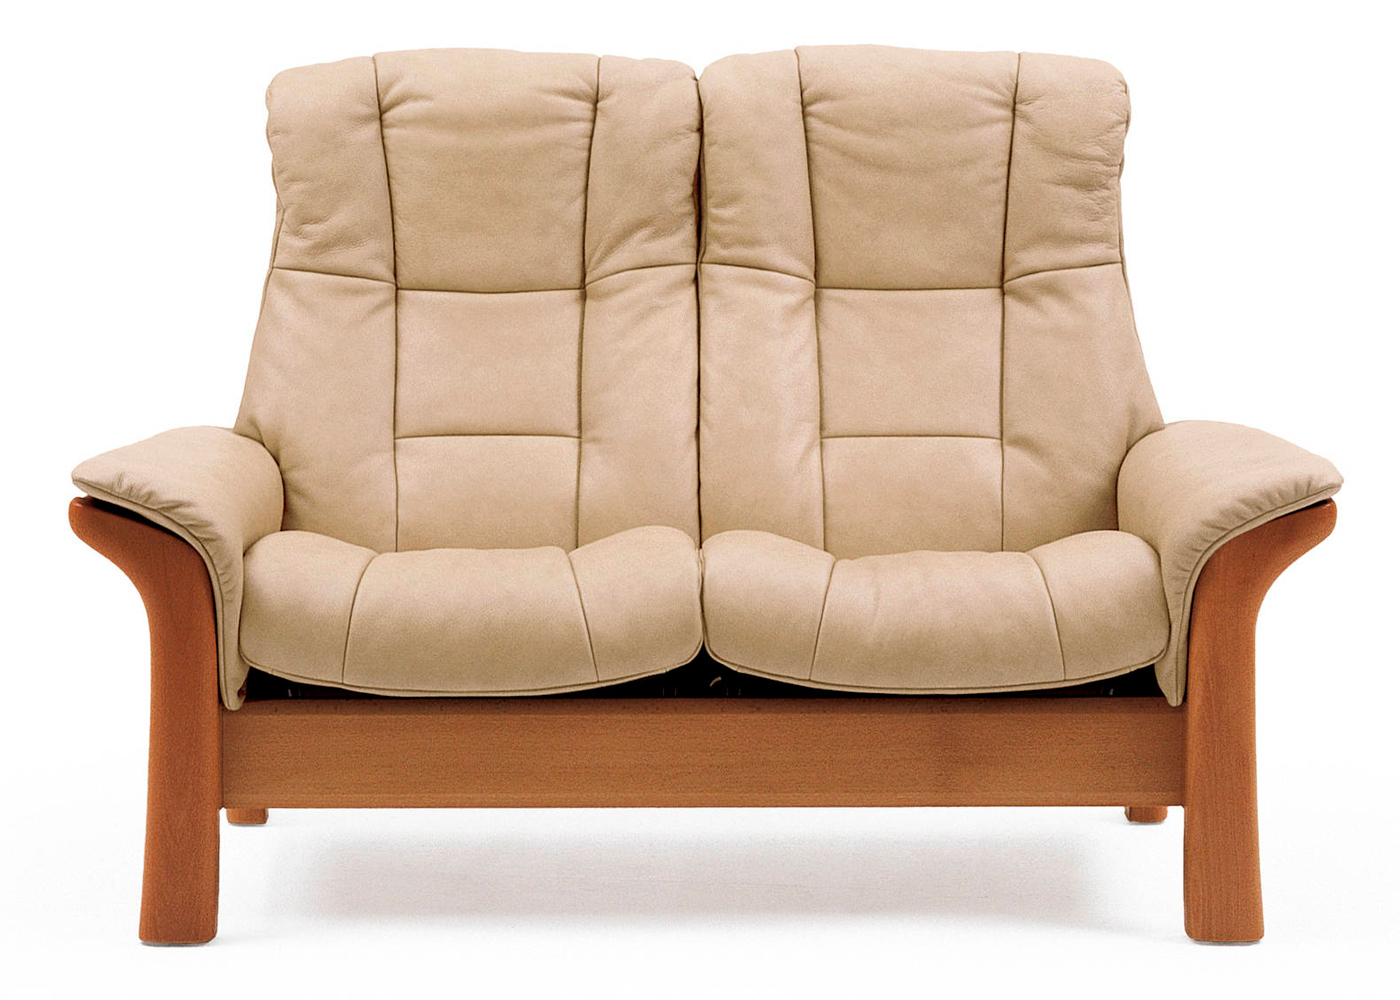 Stressless Windsor 2 Seat High Back – Midfurn Furniture In High Back Sofas And Chairs (View 12 of 15)